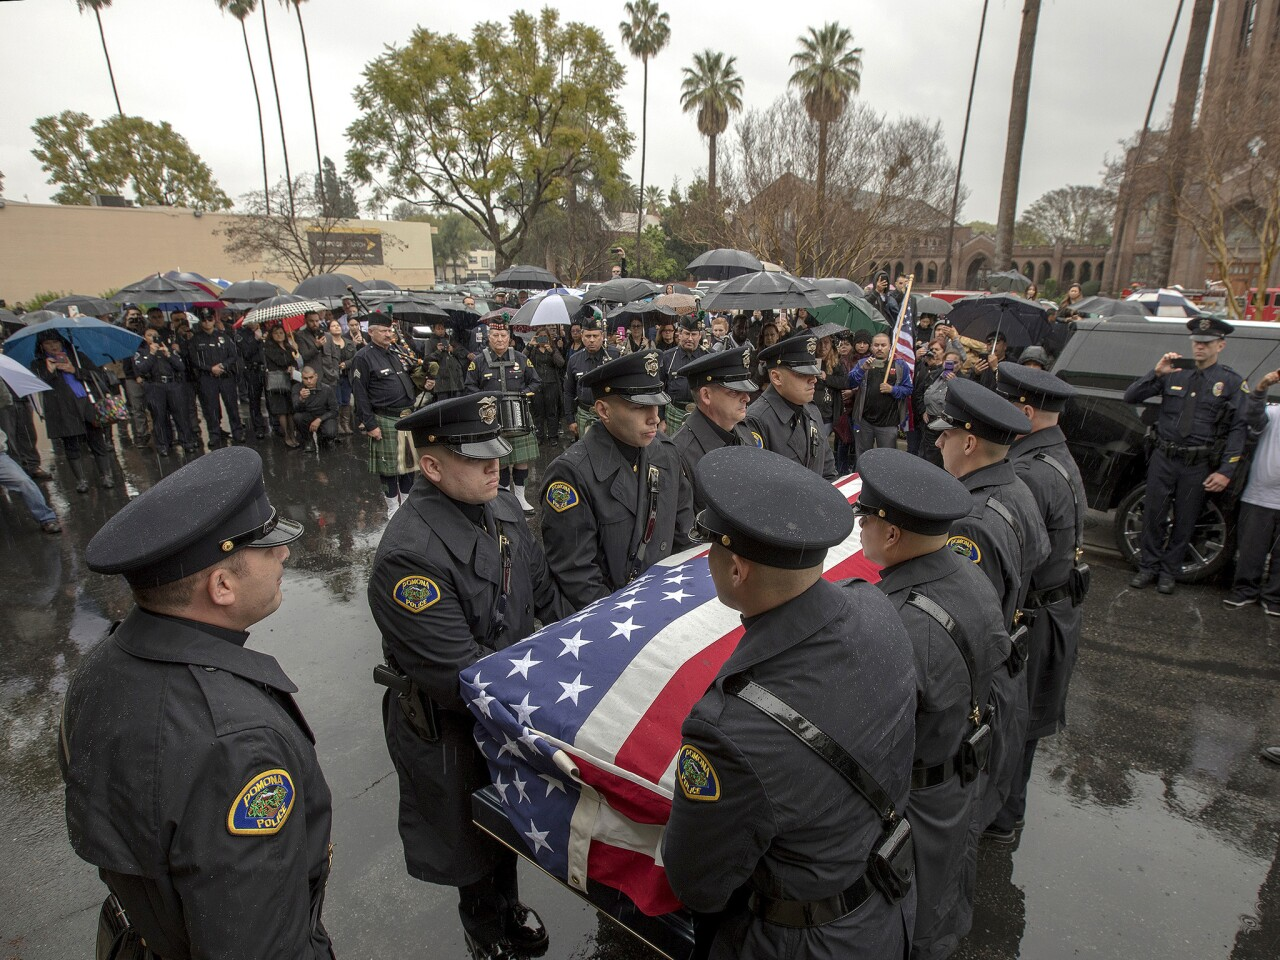 People stand in rain as Pomona Police Officer Greggory Casillas's funeral procession leaves Purpose Church for internment.